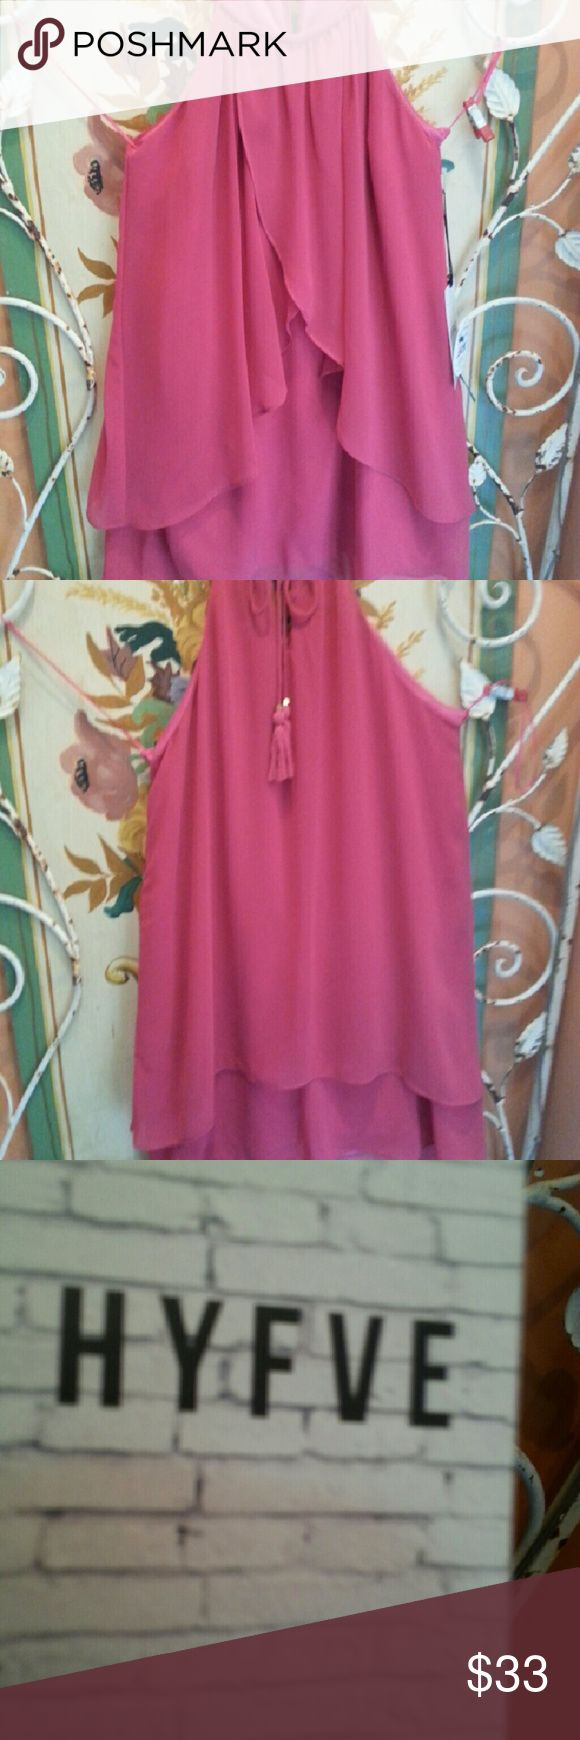 NWT Pink Sundress by Hyfve Sleeveless swing style sundress with side ruffle  in front and back with key hole back and cute tassle.  Lined. 100% Polyester. Hand Wash Size M Hyfve Dresses Mini